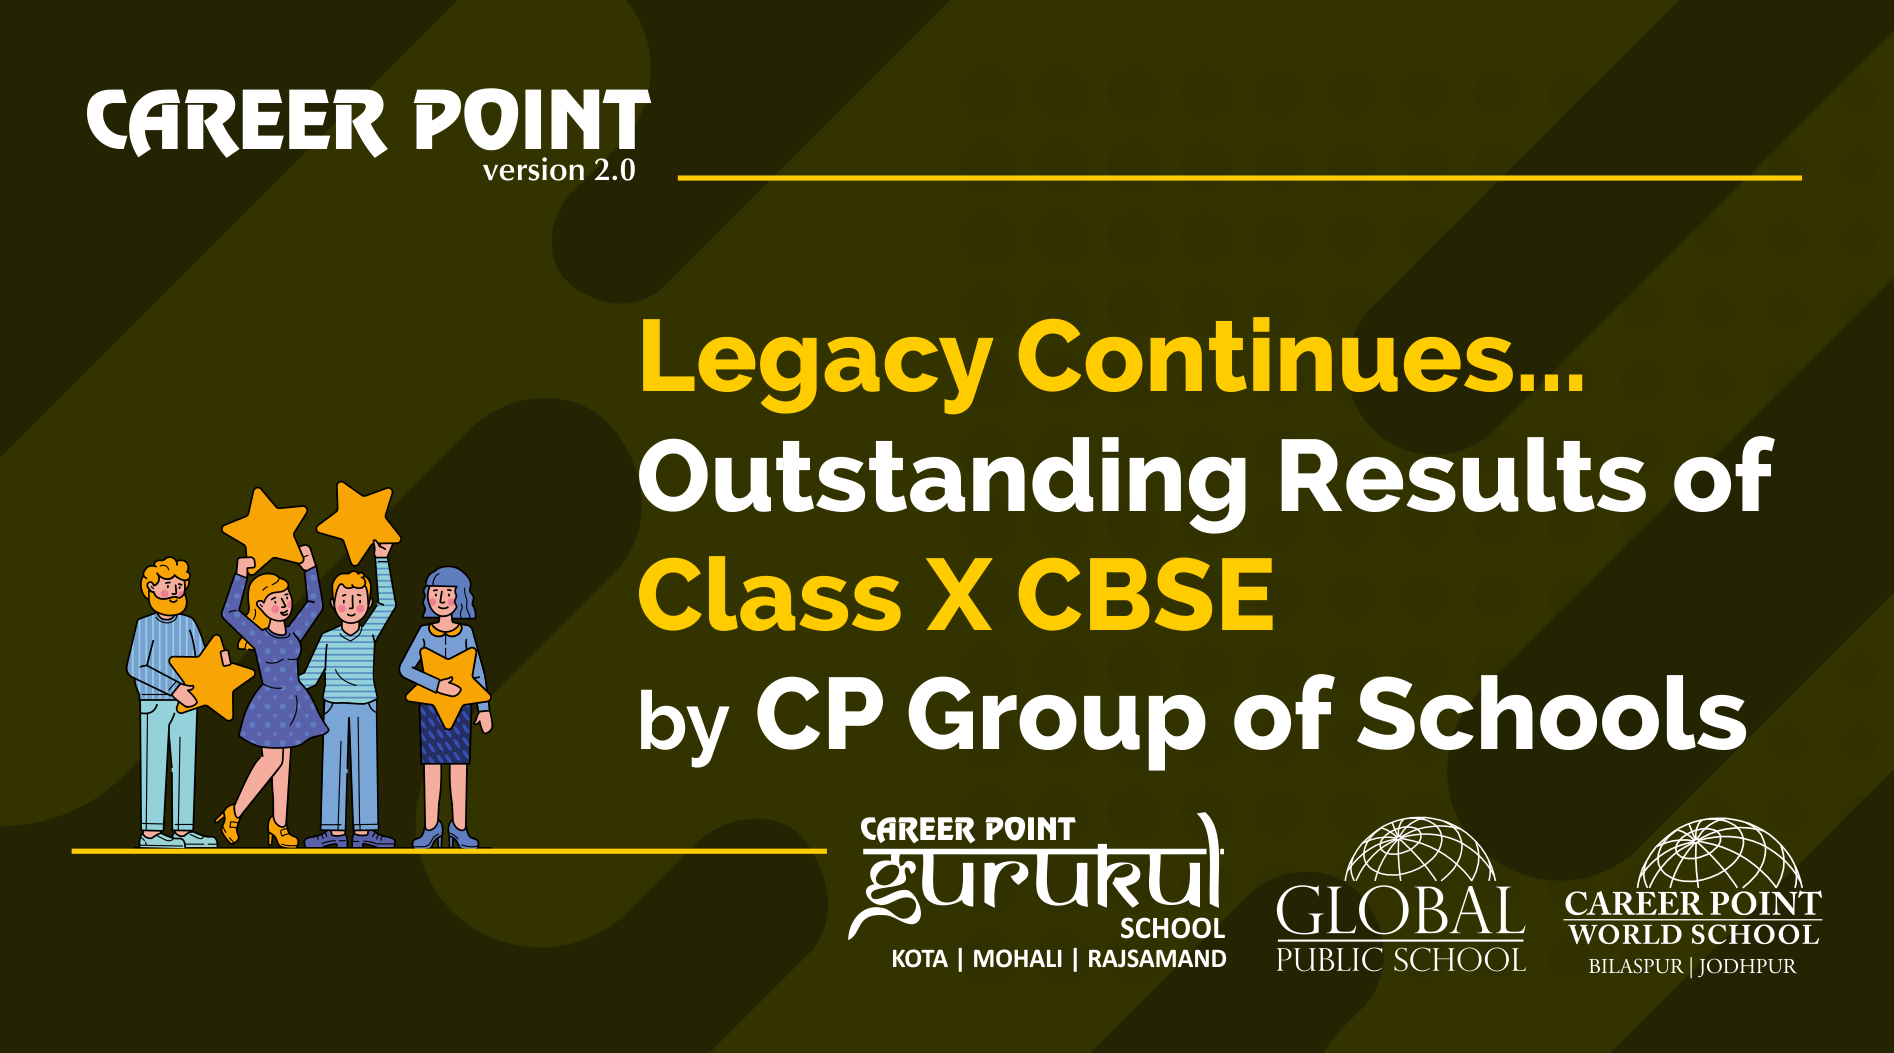 Legacy continues...Outstanding results of class X CBSE by CP Group of schools.